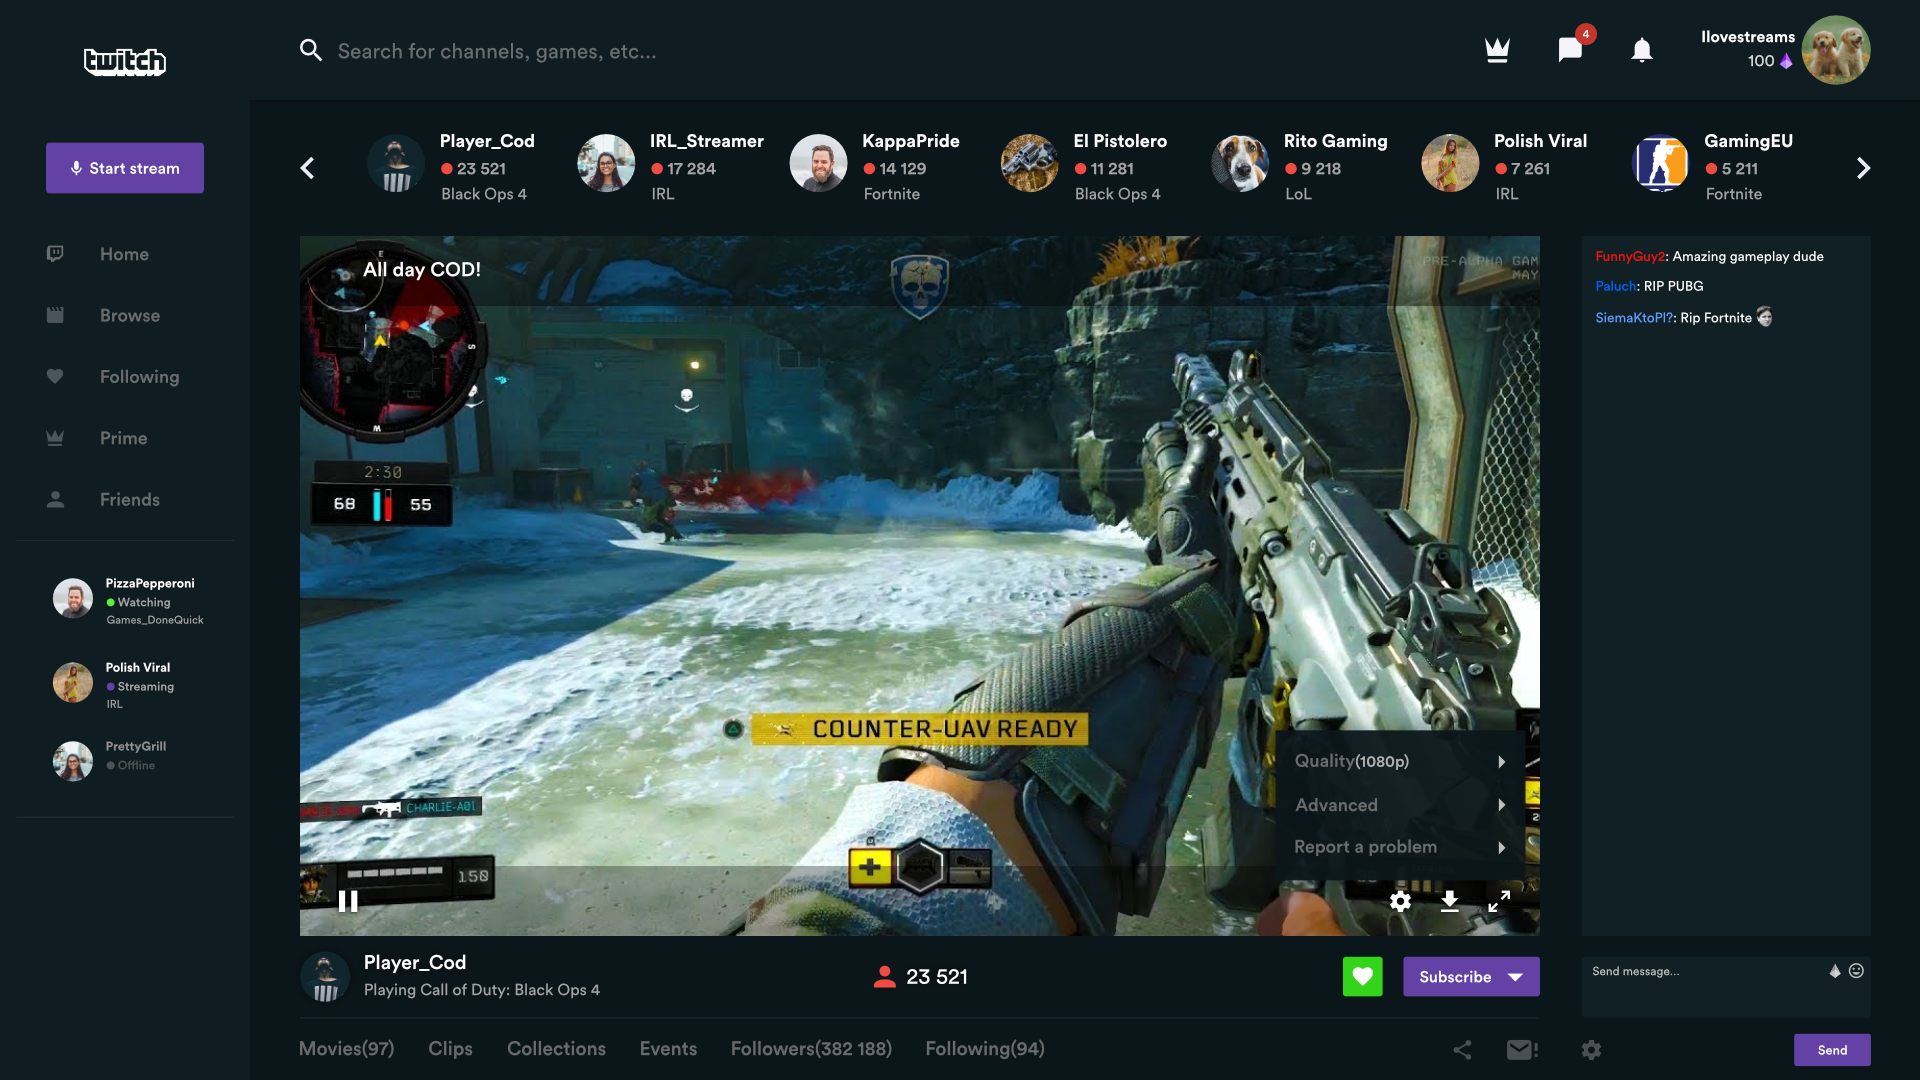 Twitch.tv beautified videoplay